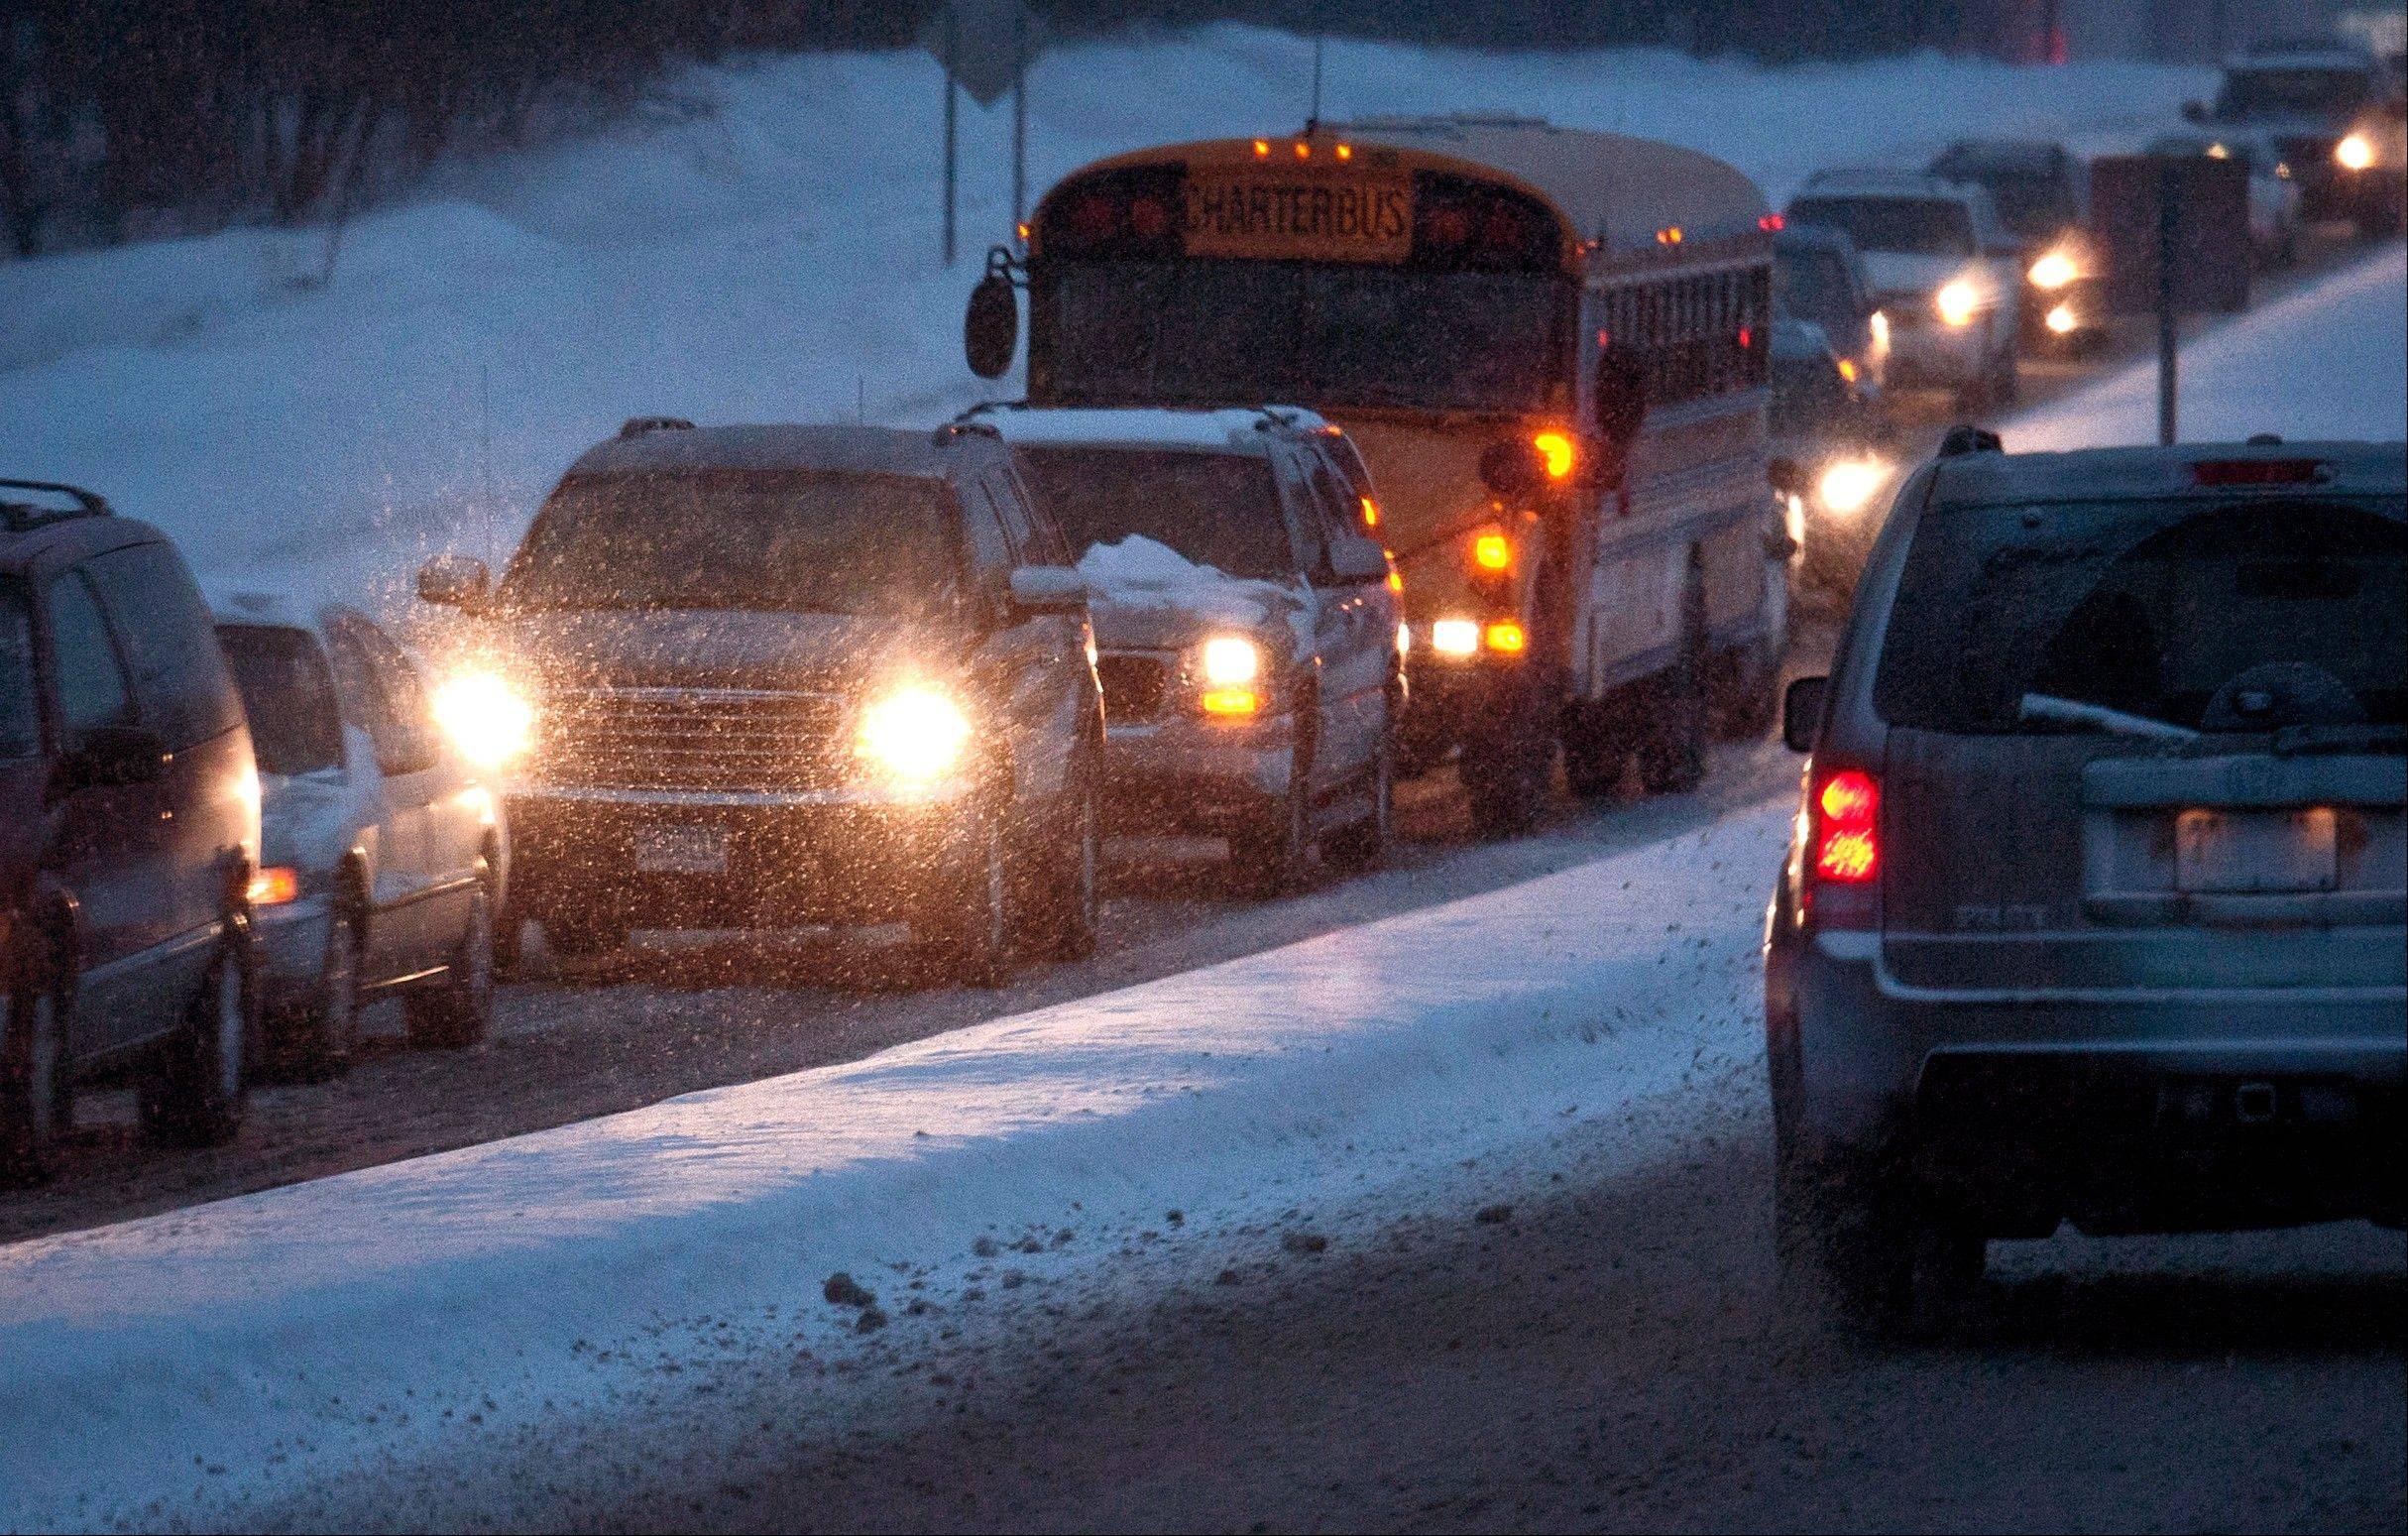 Heavy snow made for slow traffic early Friday morning along Diffley Road in Eagan, Friday, Feb. 22, 2013. A major snowstorm that buried parts of the Midwest grazed Minnesota, where two to three inches of snow snarled the morning commute in the Twin Cities area.